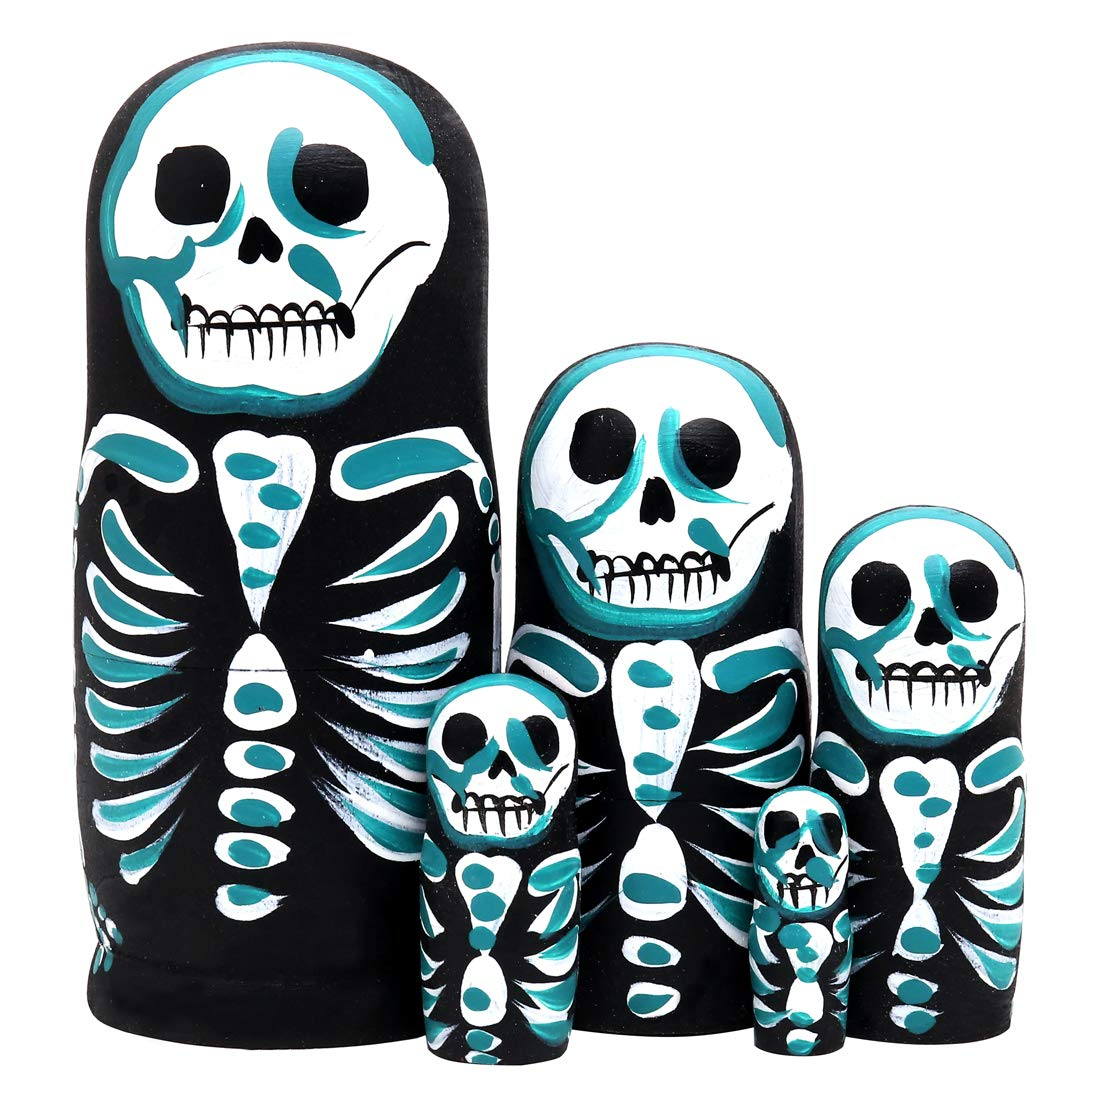 Debbieicy 5Pcs Beautiful Handmade Wooden Russian Nesting Dolls Skull Matryoshka dolls Gift for Halloween and Birthday - Stacking Doll Set of 5 From 6.3'' Tall by Debbieicy (Image #5)